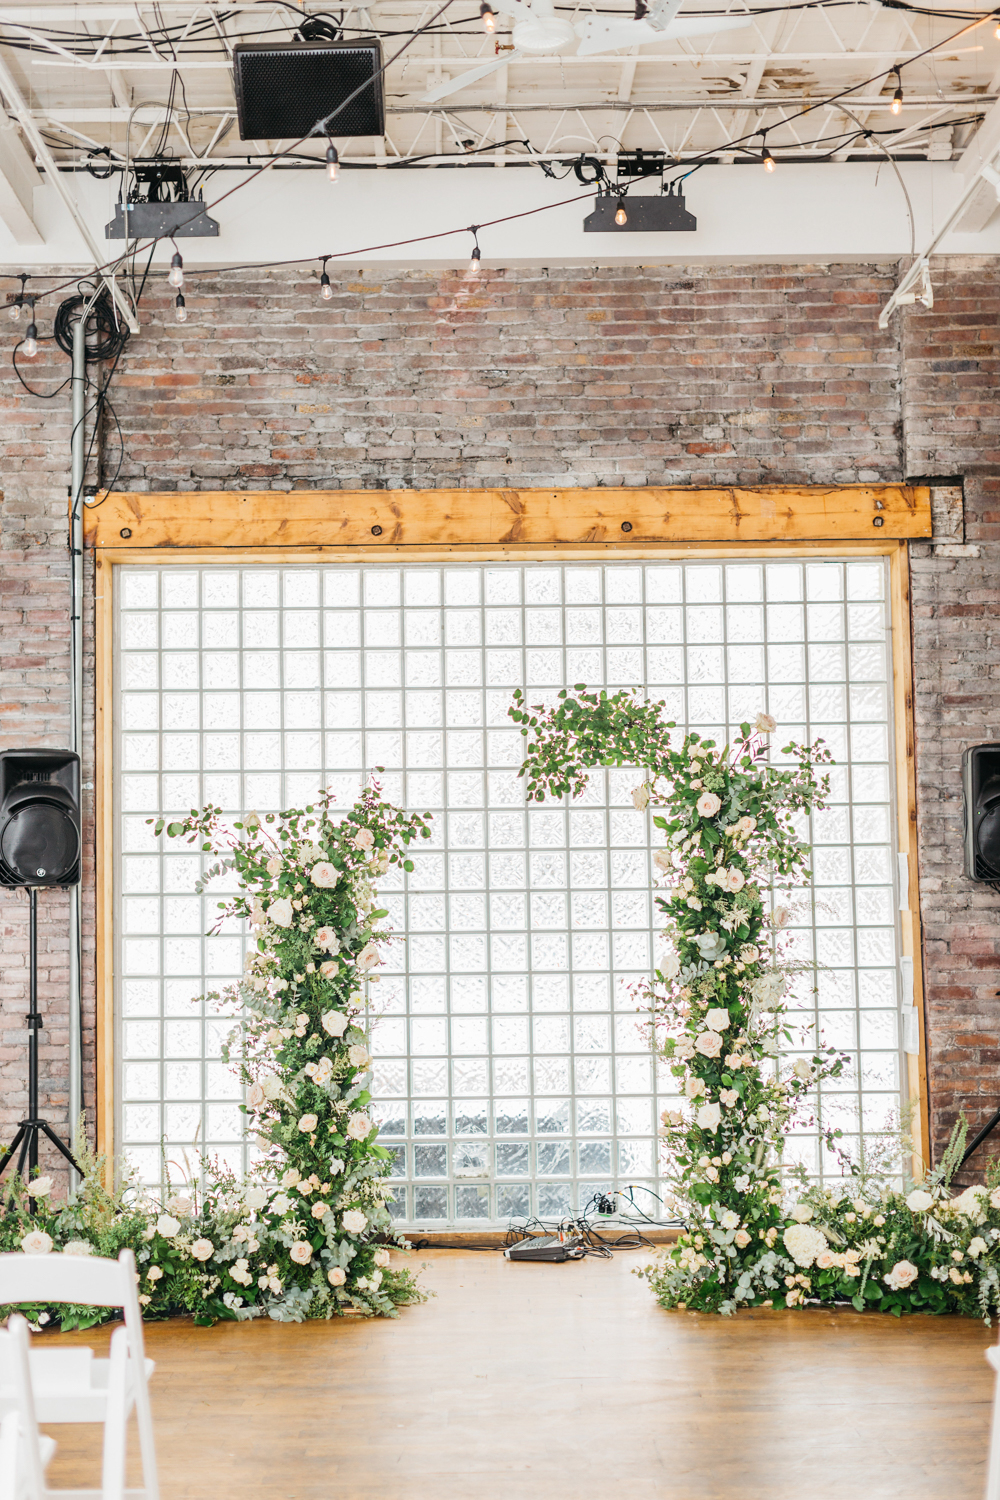 Ceremony background florals by Rikki Marcone Events at The Glass Factory